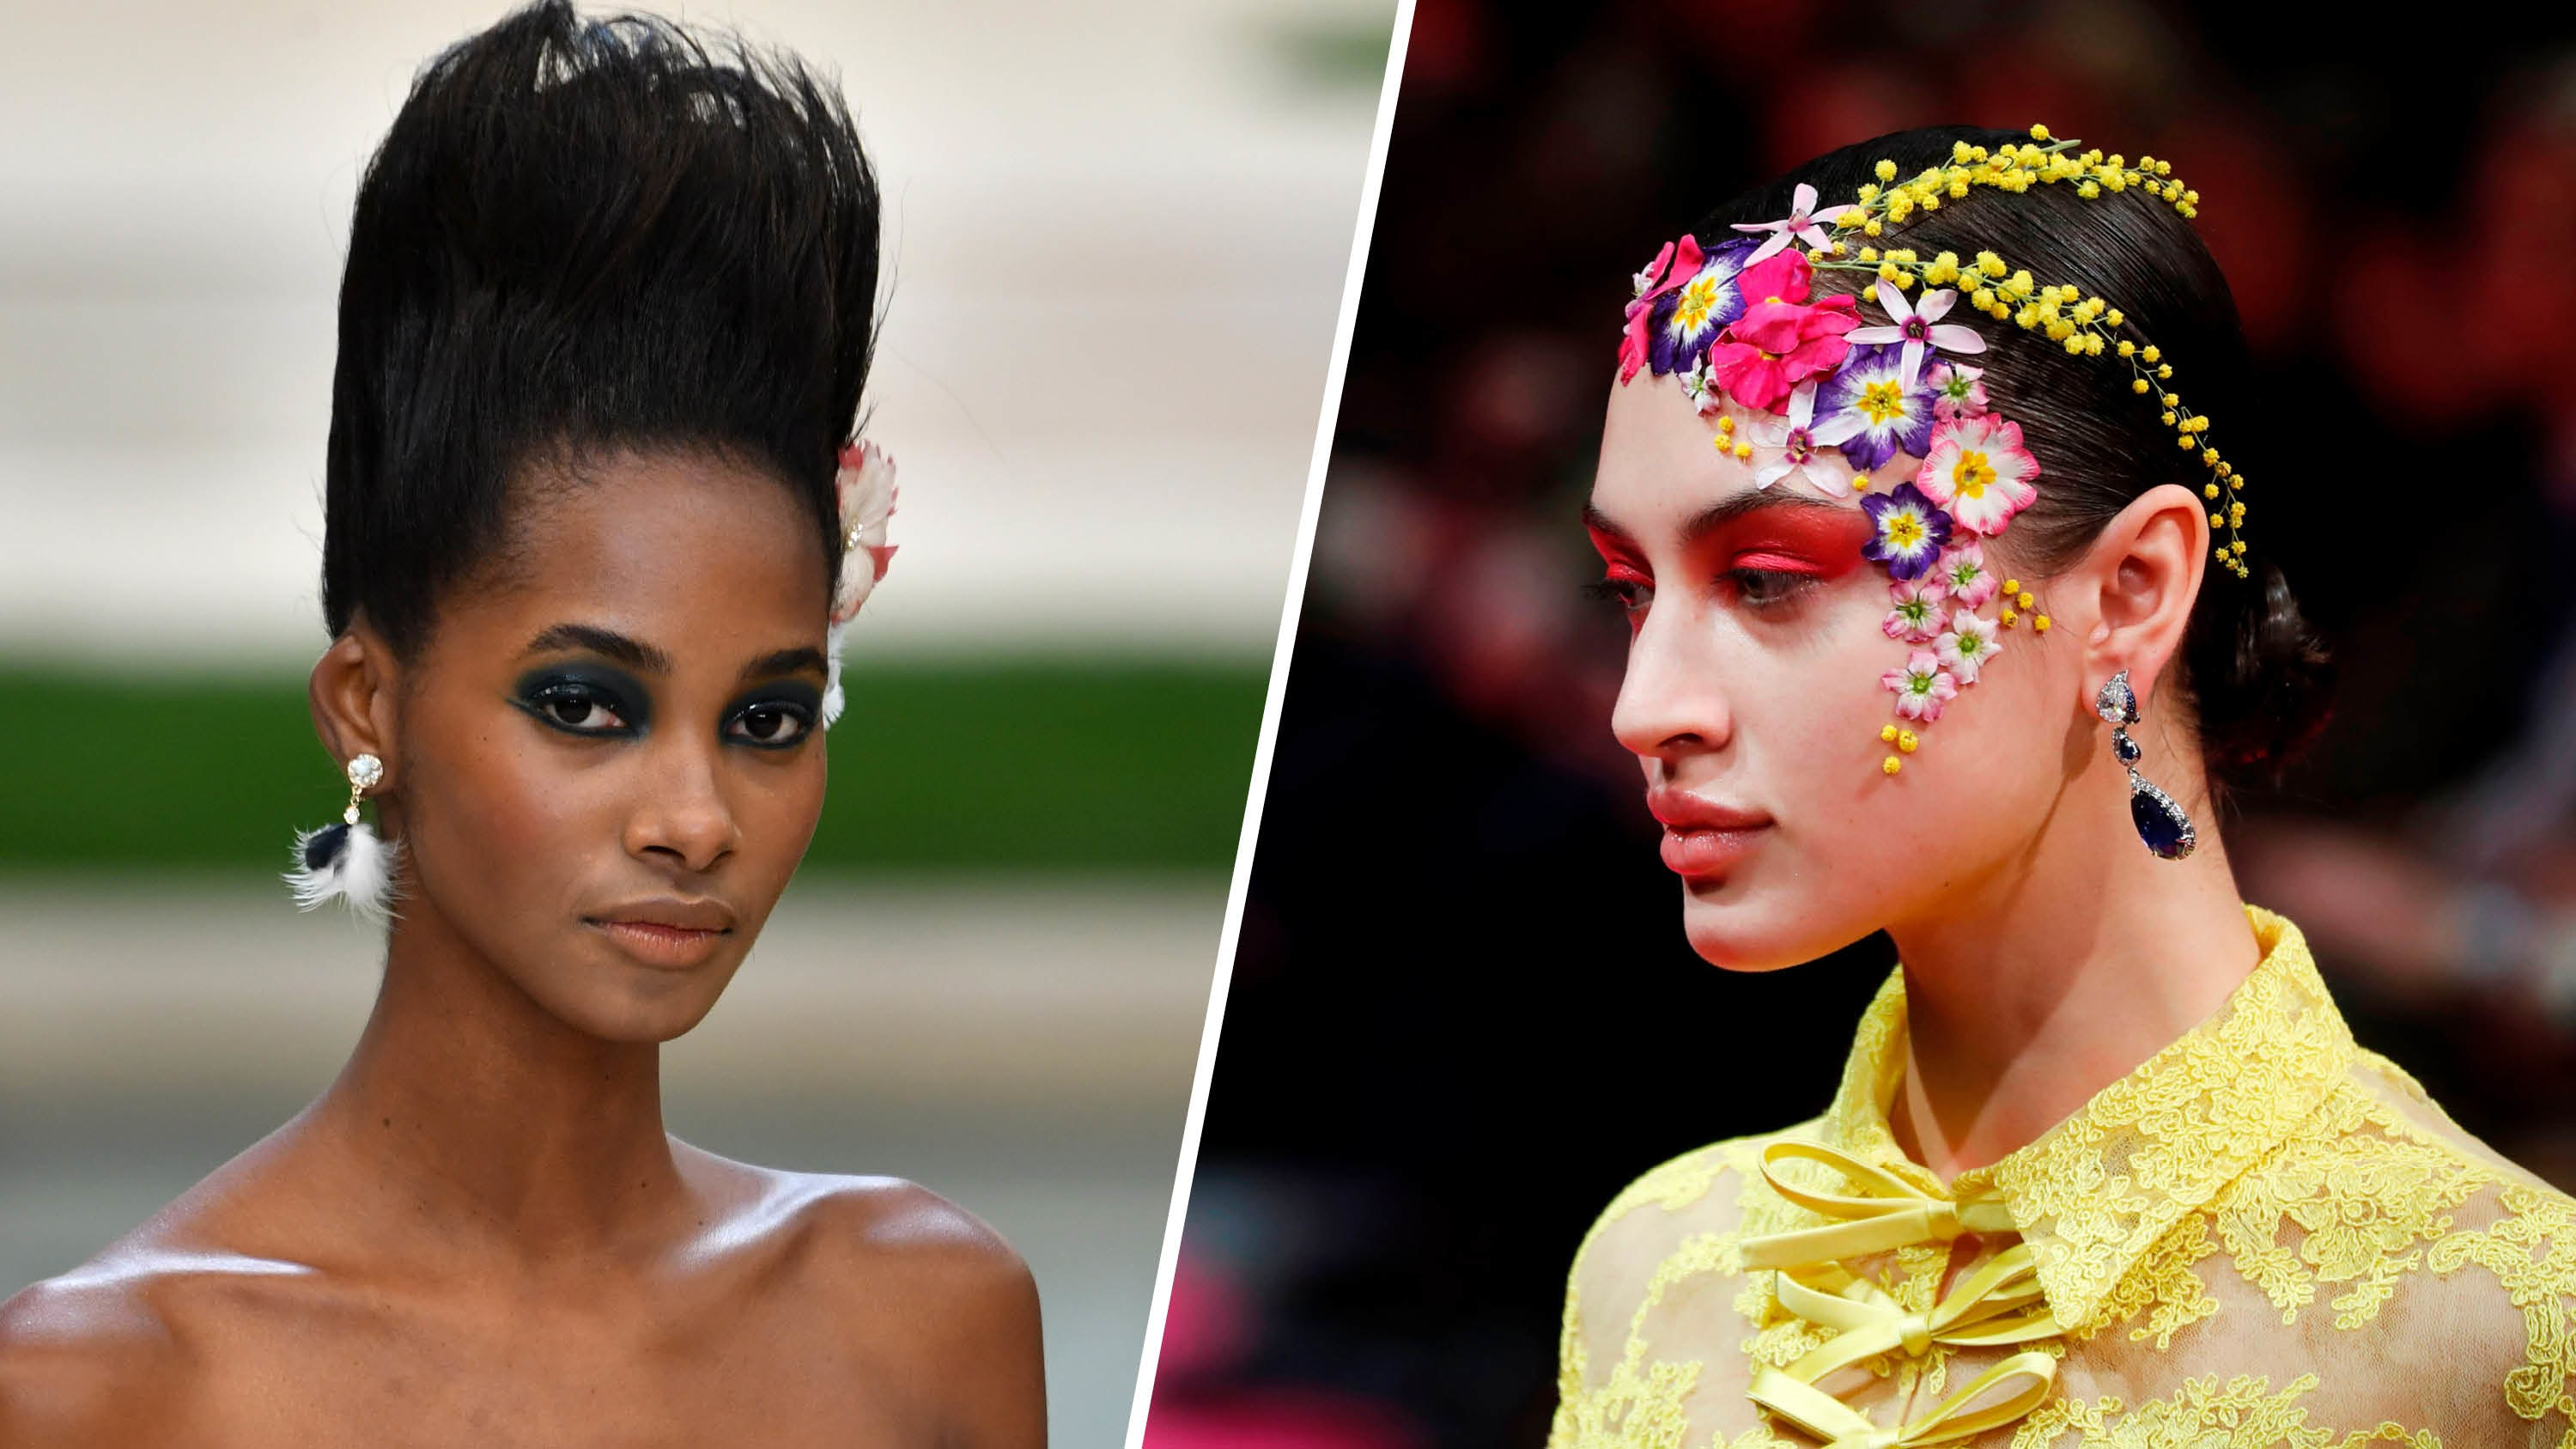 Big Hairstyles Chanel Couture Spring 2019 2019 Haircuts